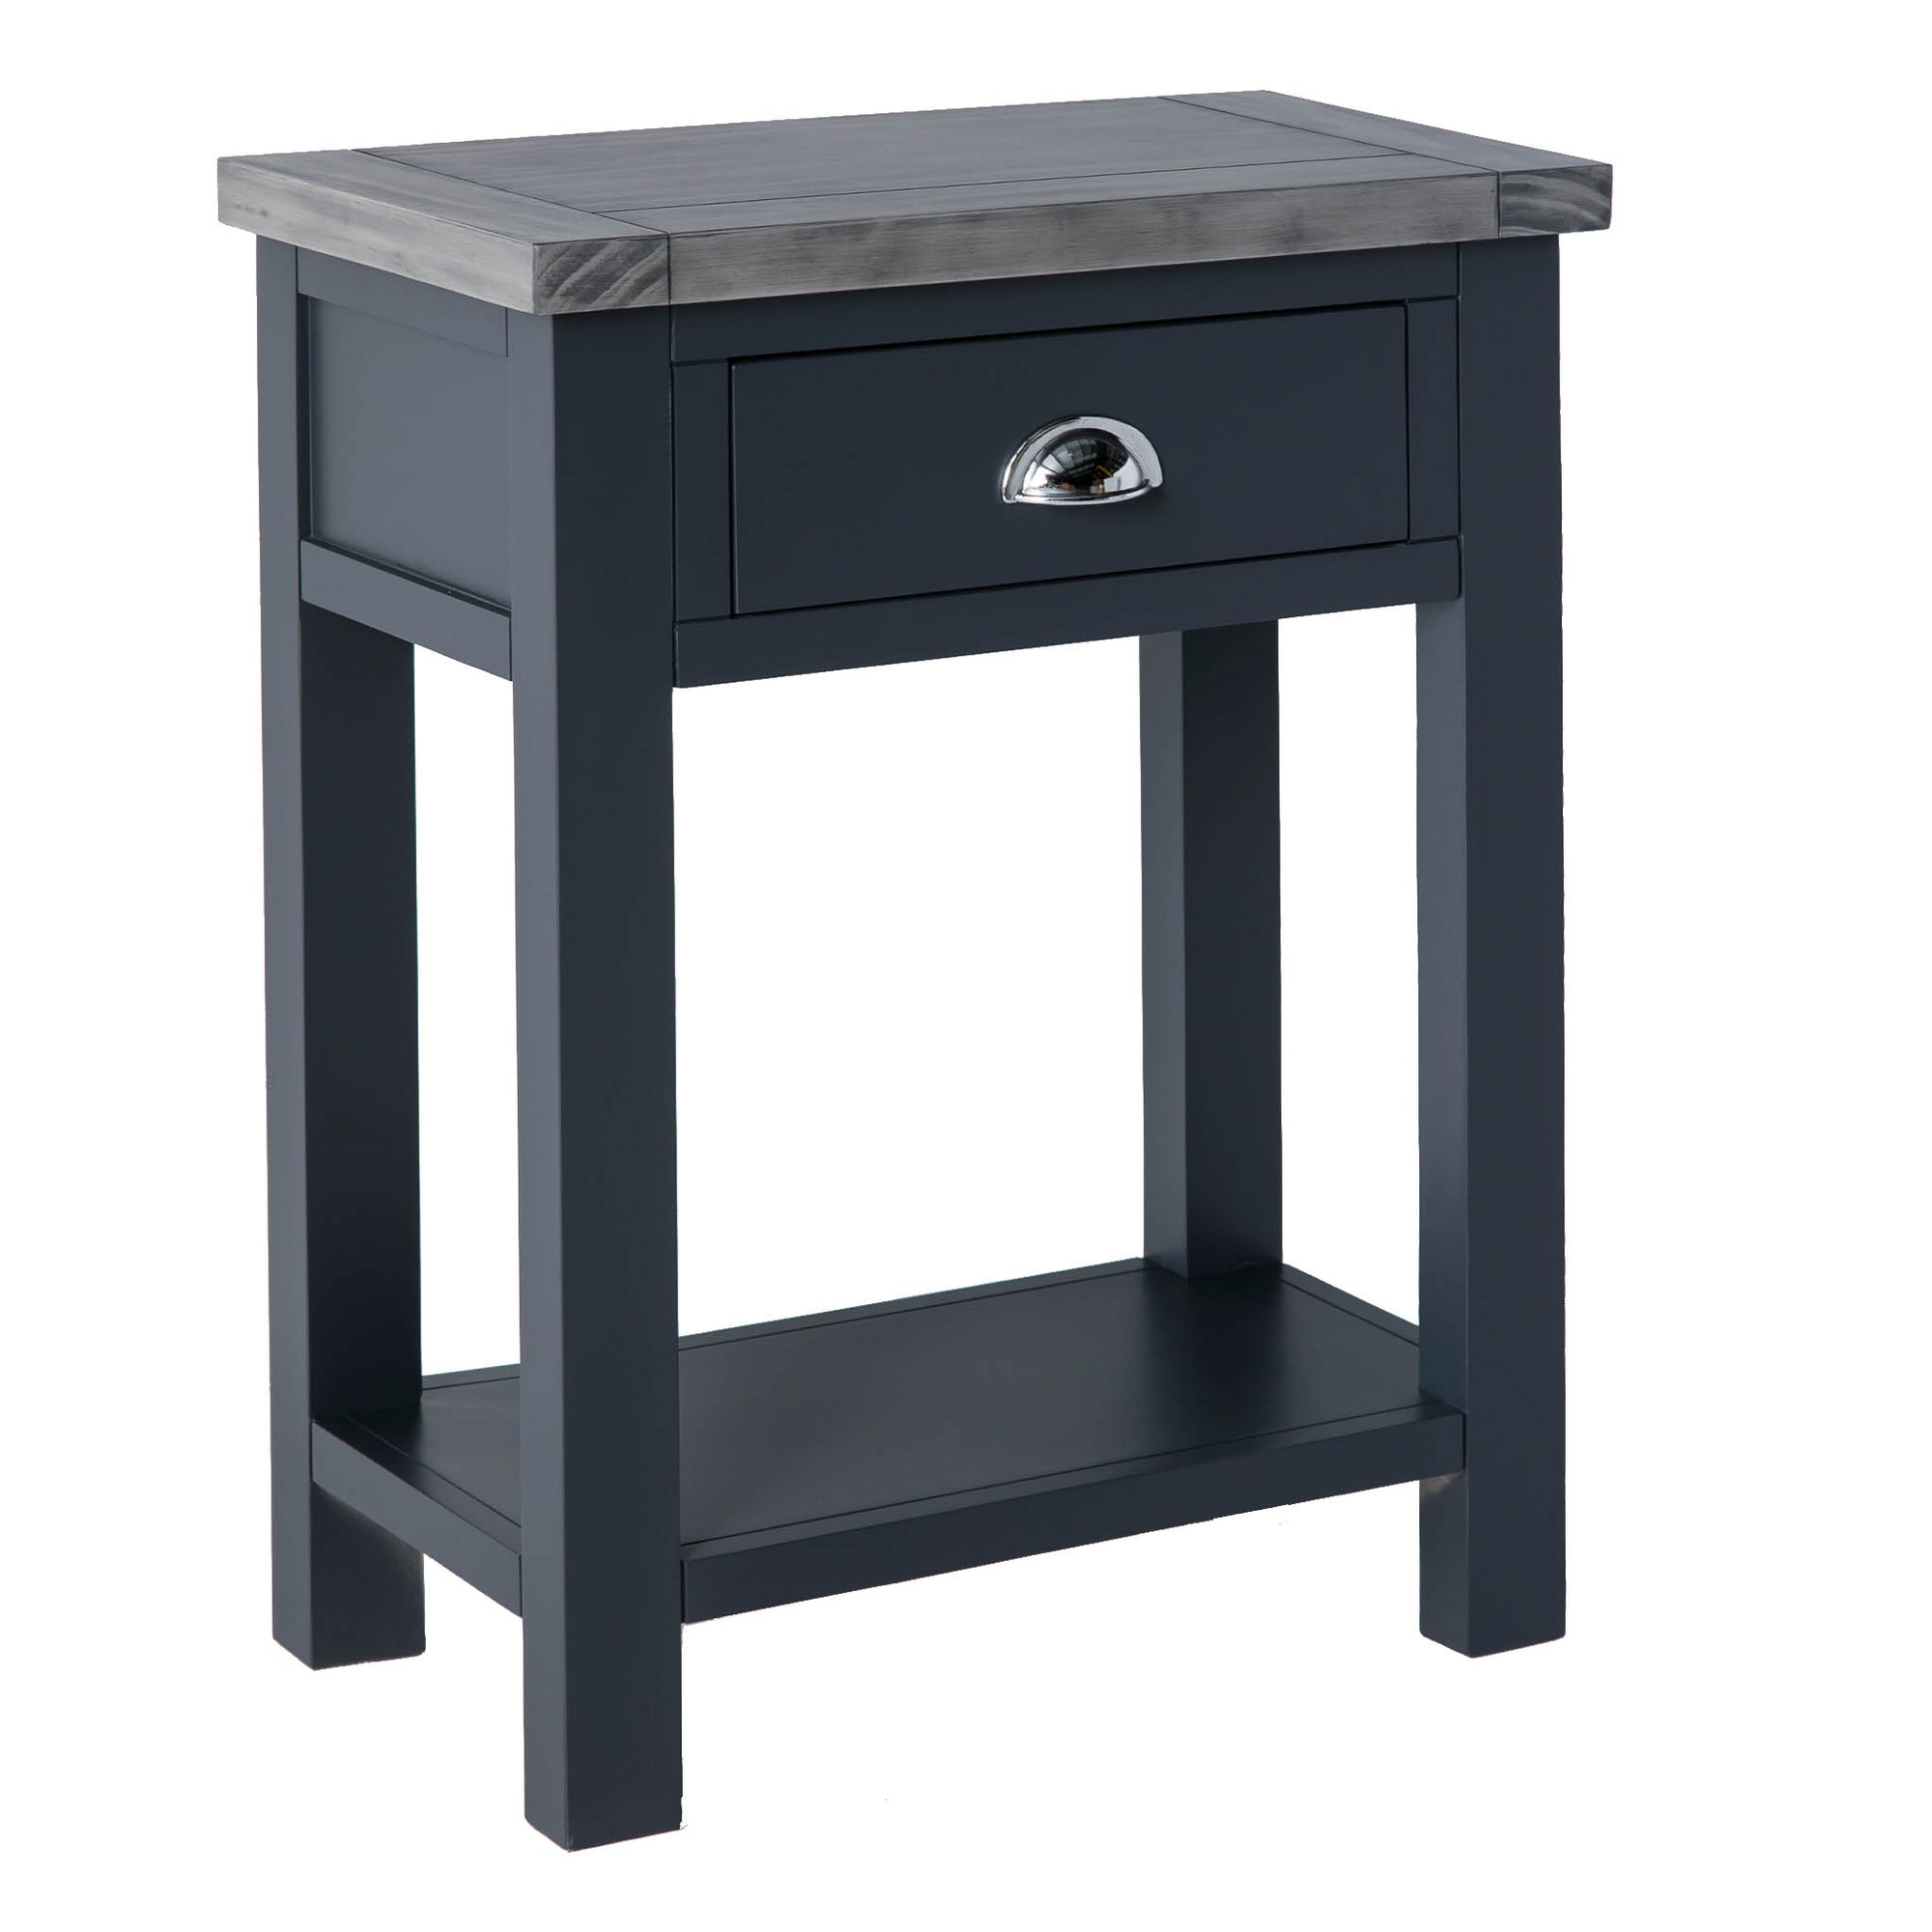 Bristol Charcoal Telephone Table by Roseland Furniture